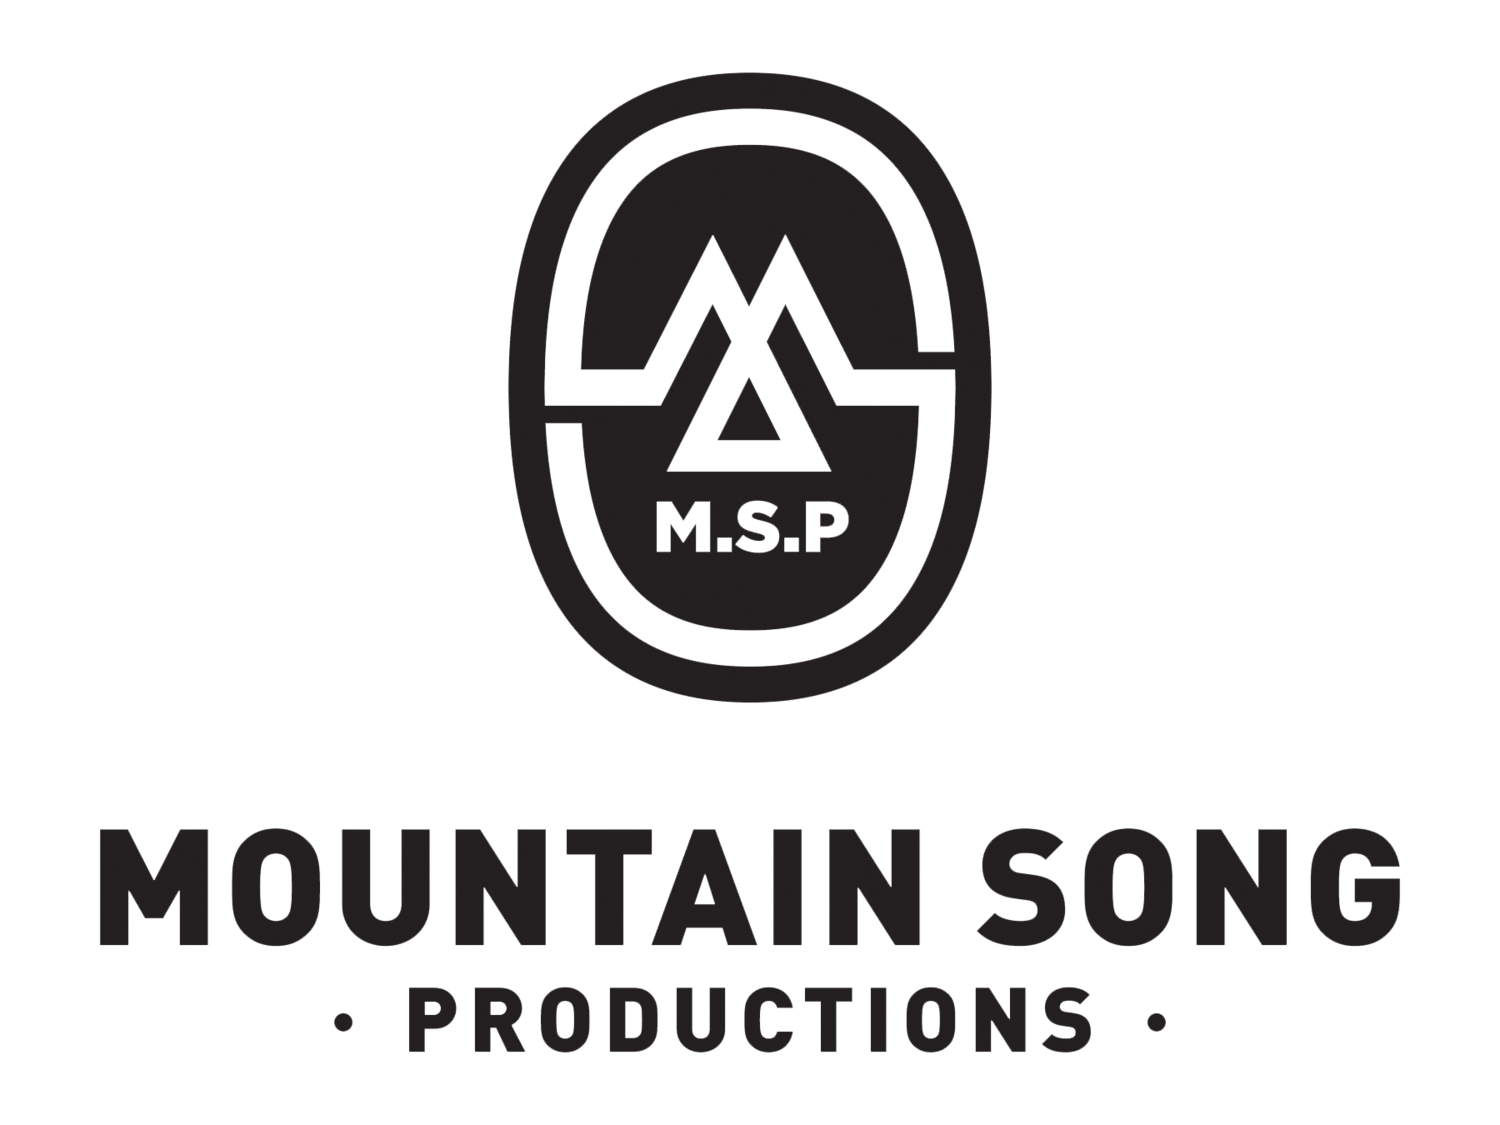 Mountain Song Productions